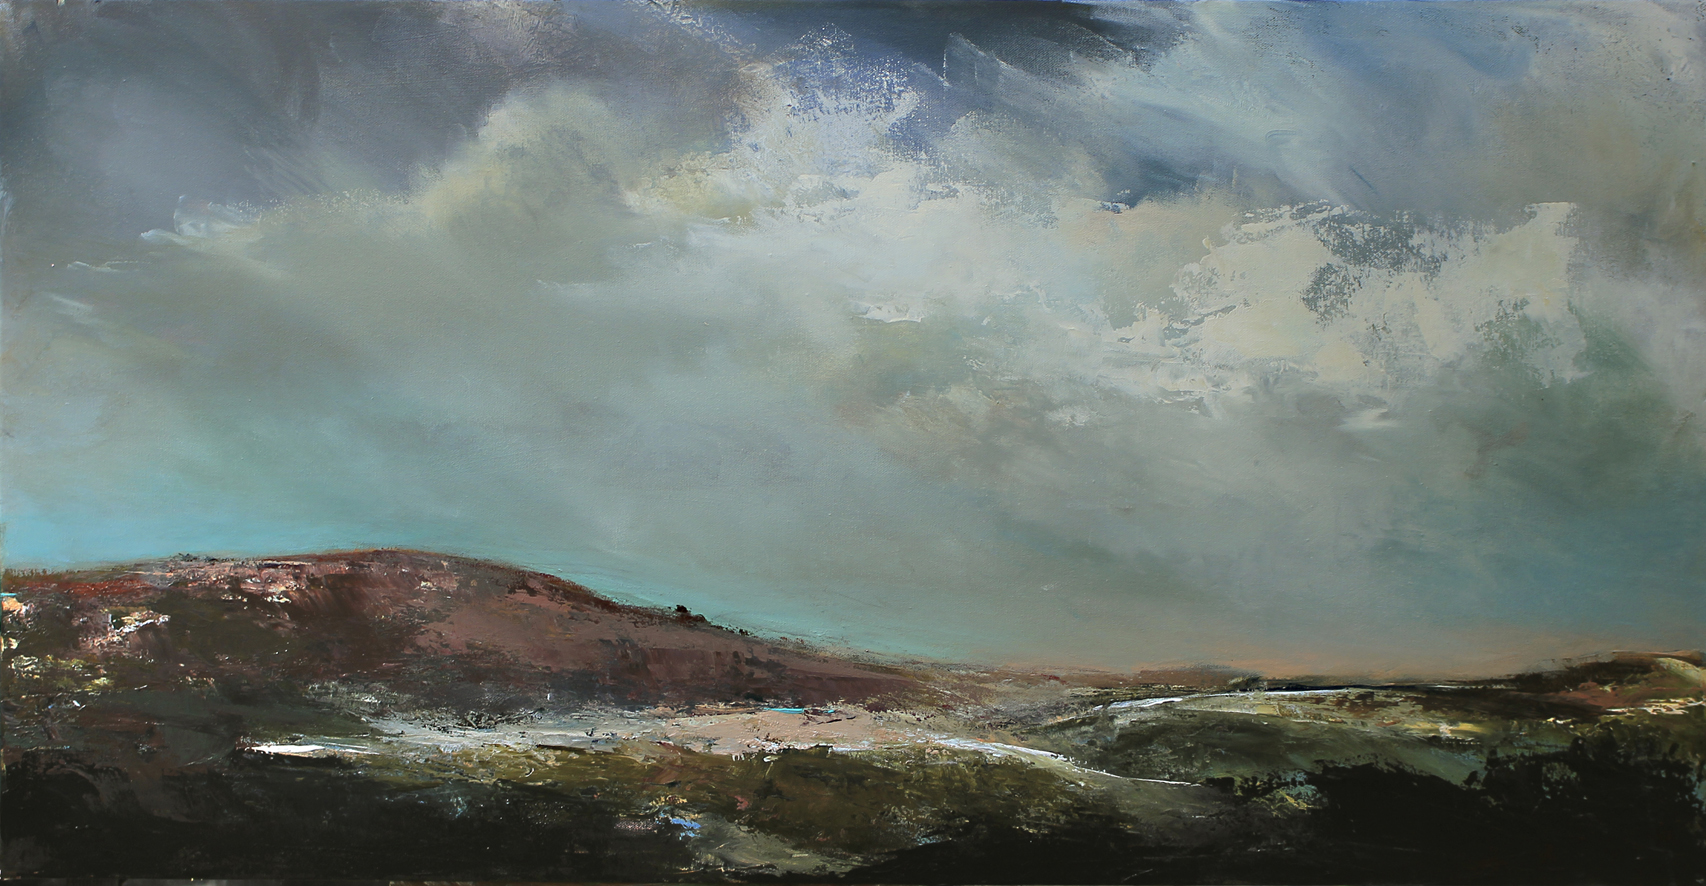 IMG_9422a whitby moor patrick smith